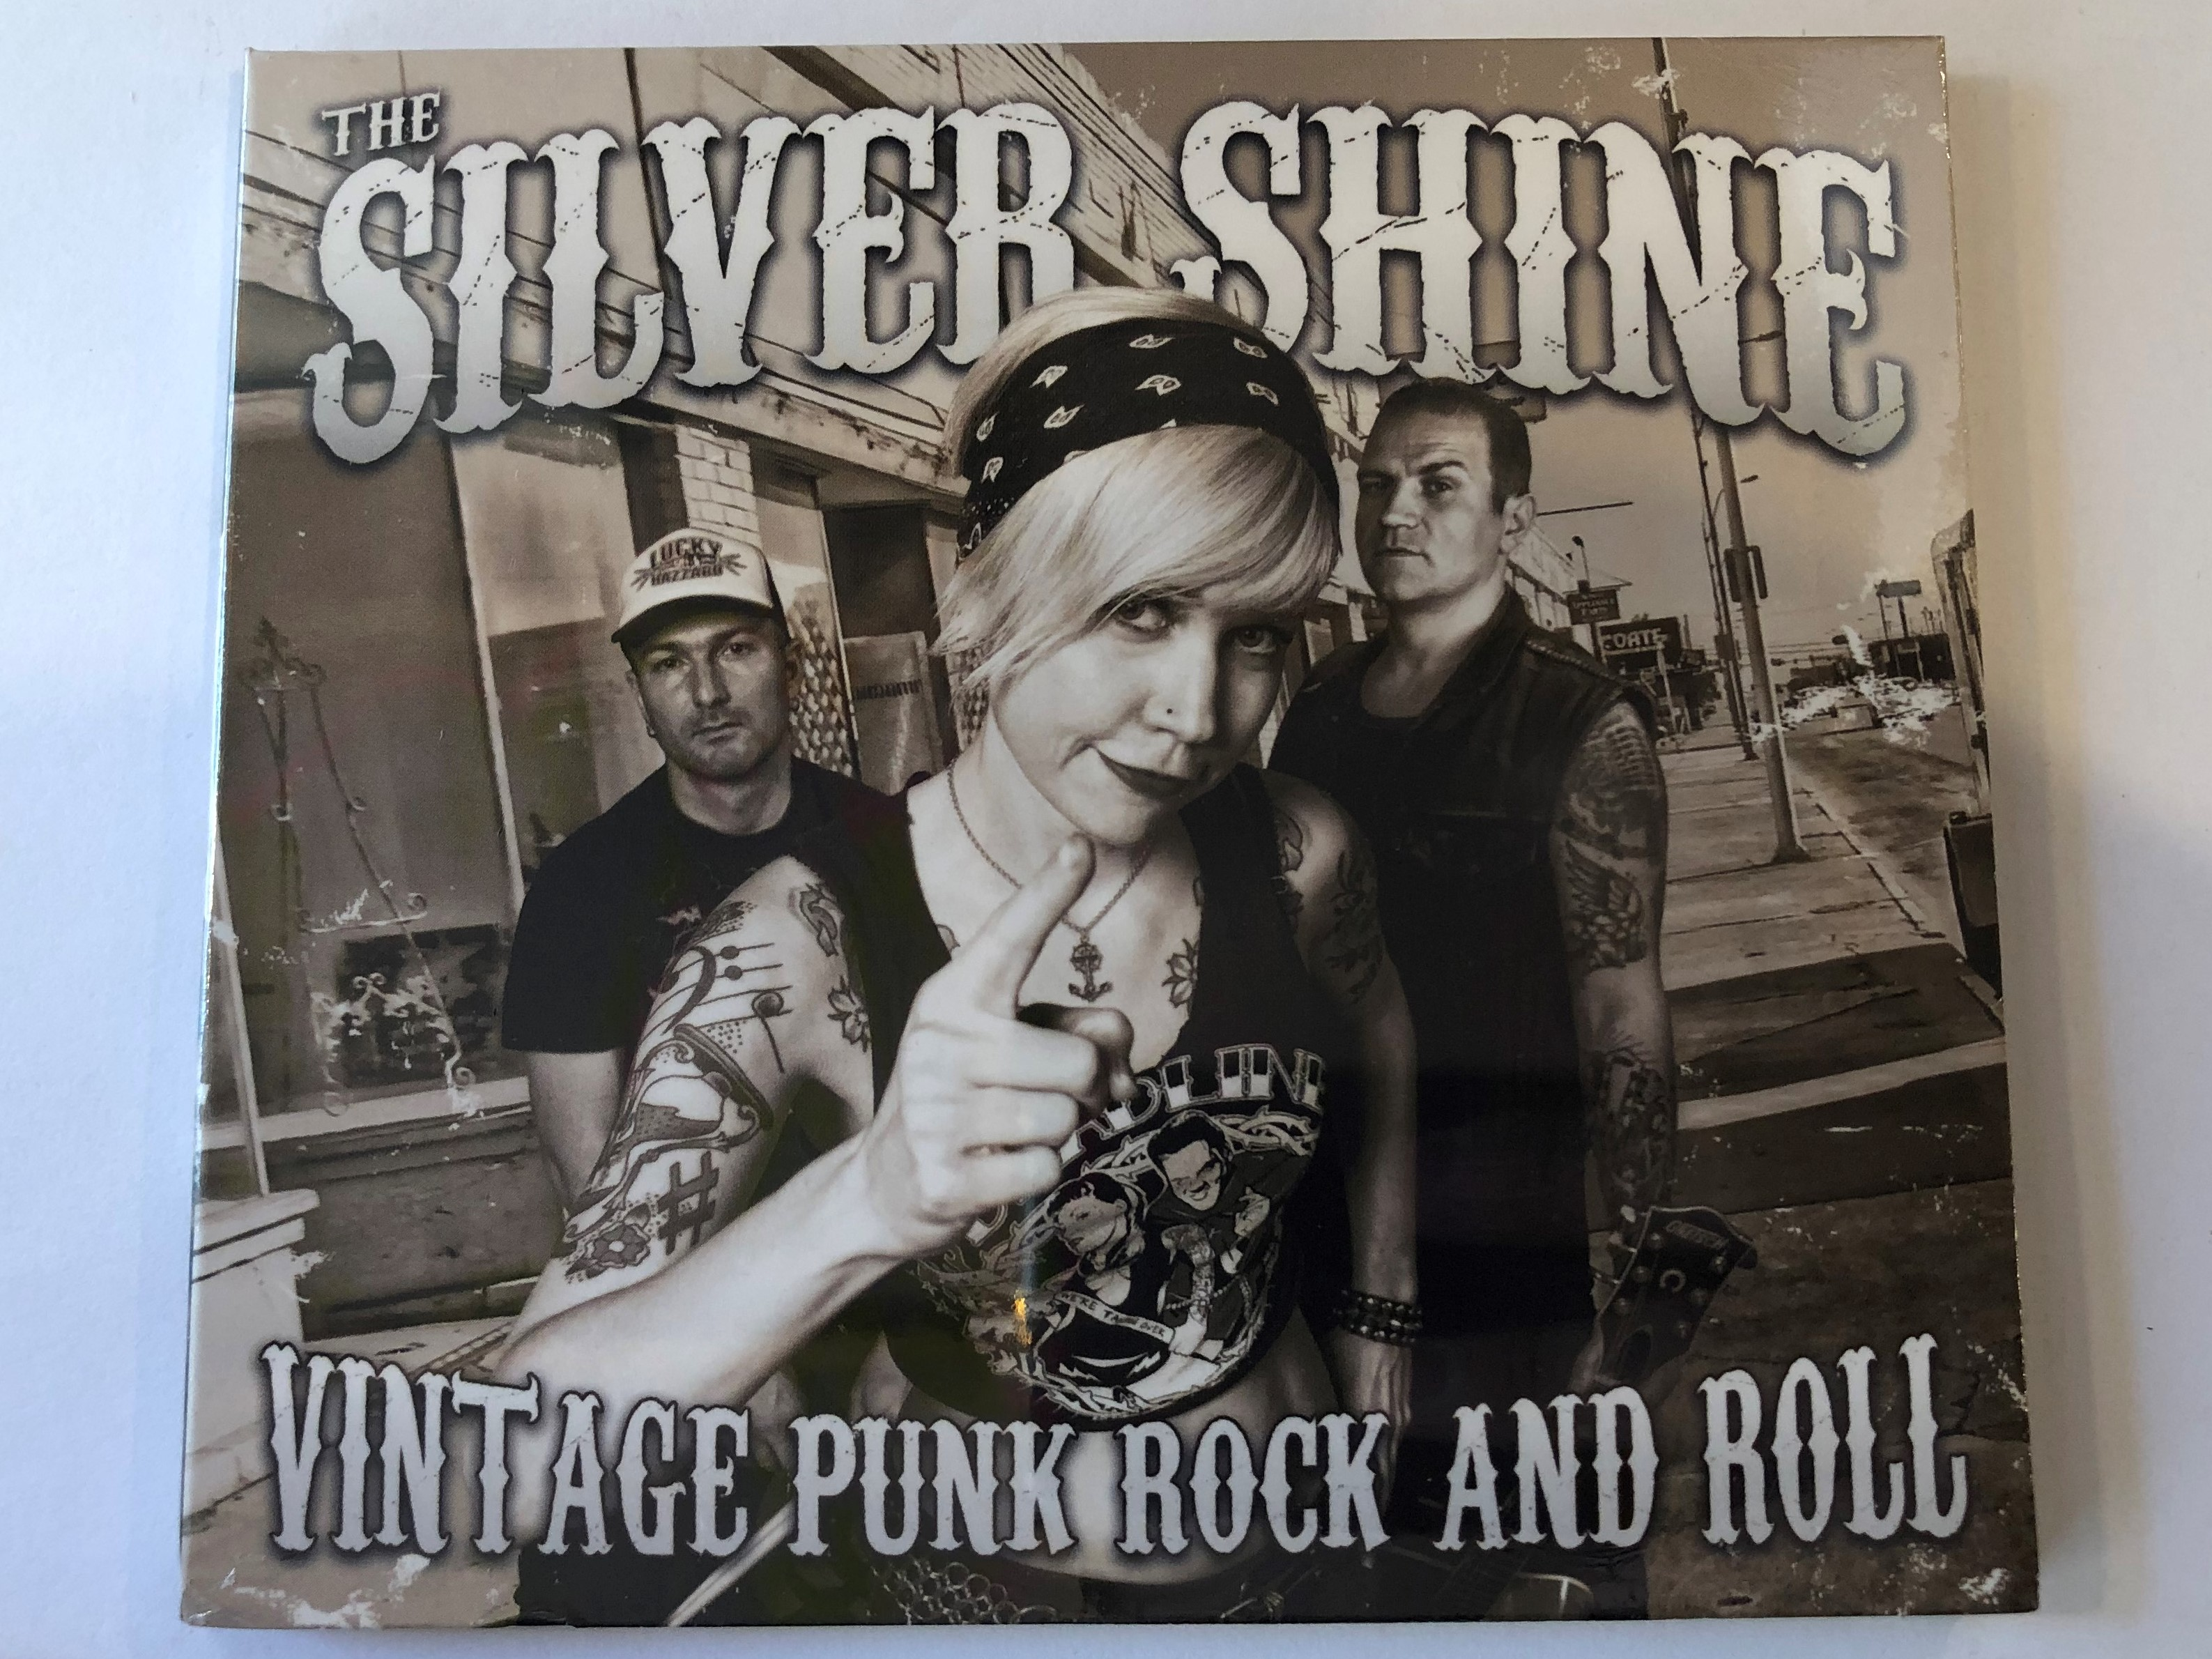 the-silver-shine-vintage-punk-rock-and-roll-grundrecords-audio-cd-2014-gr036-1-.jpg